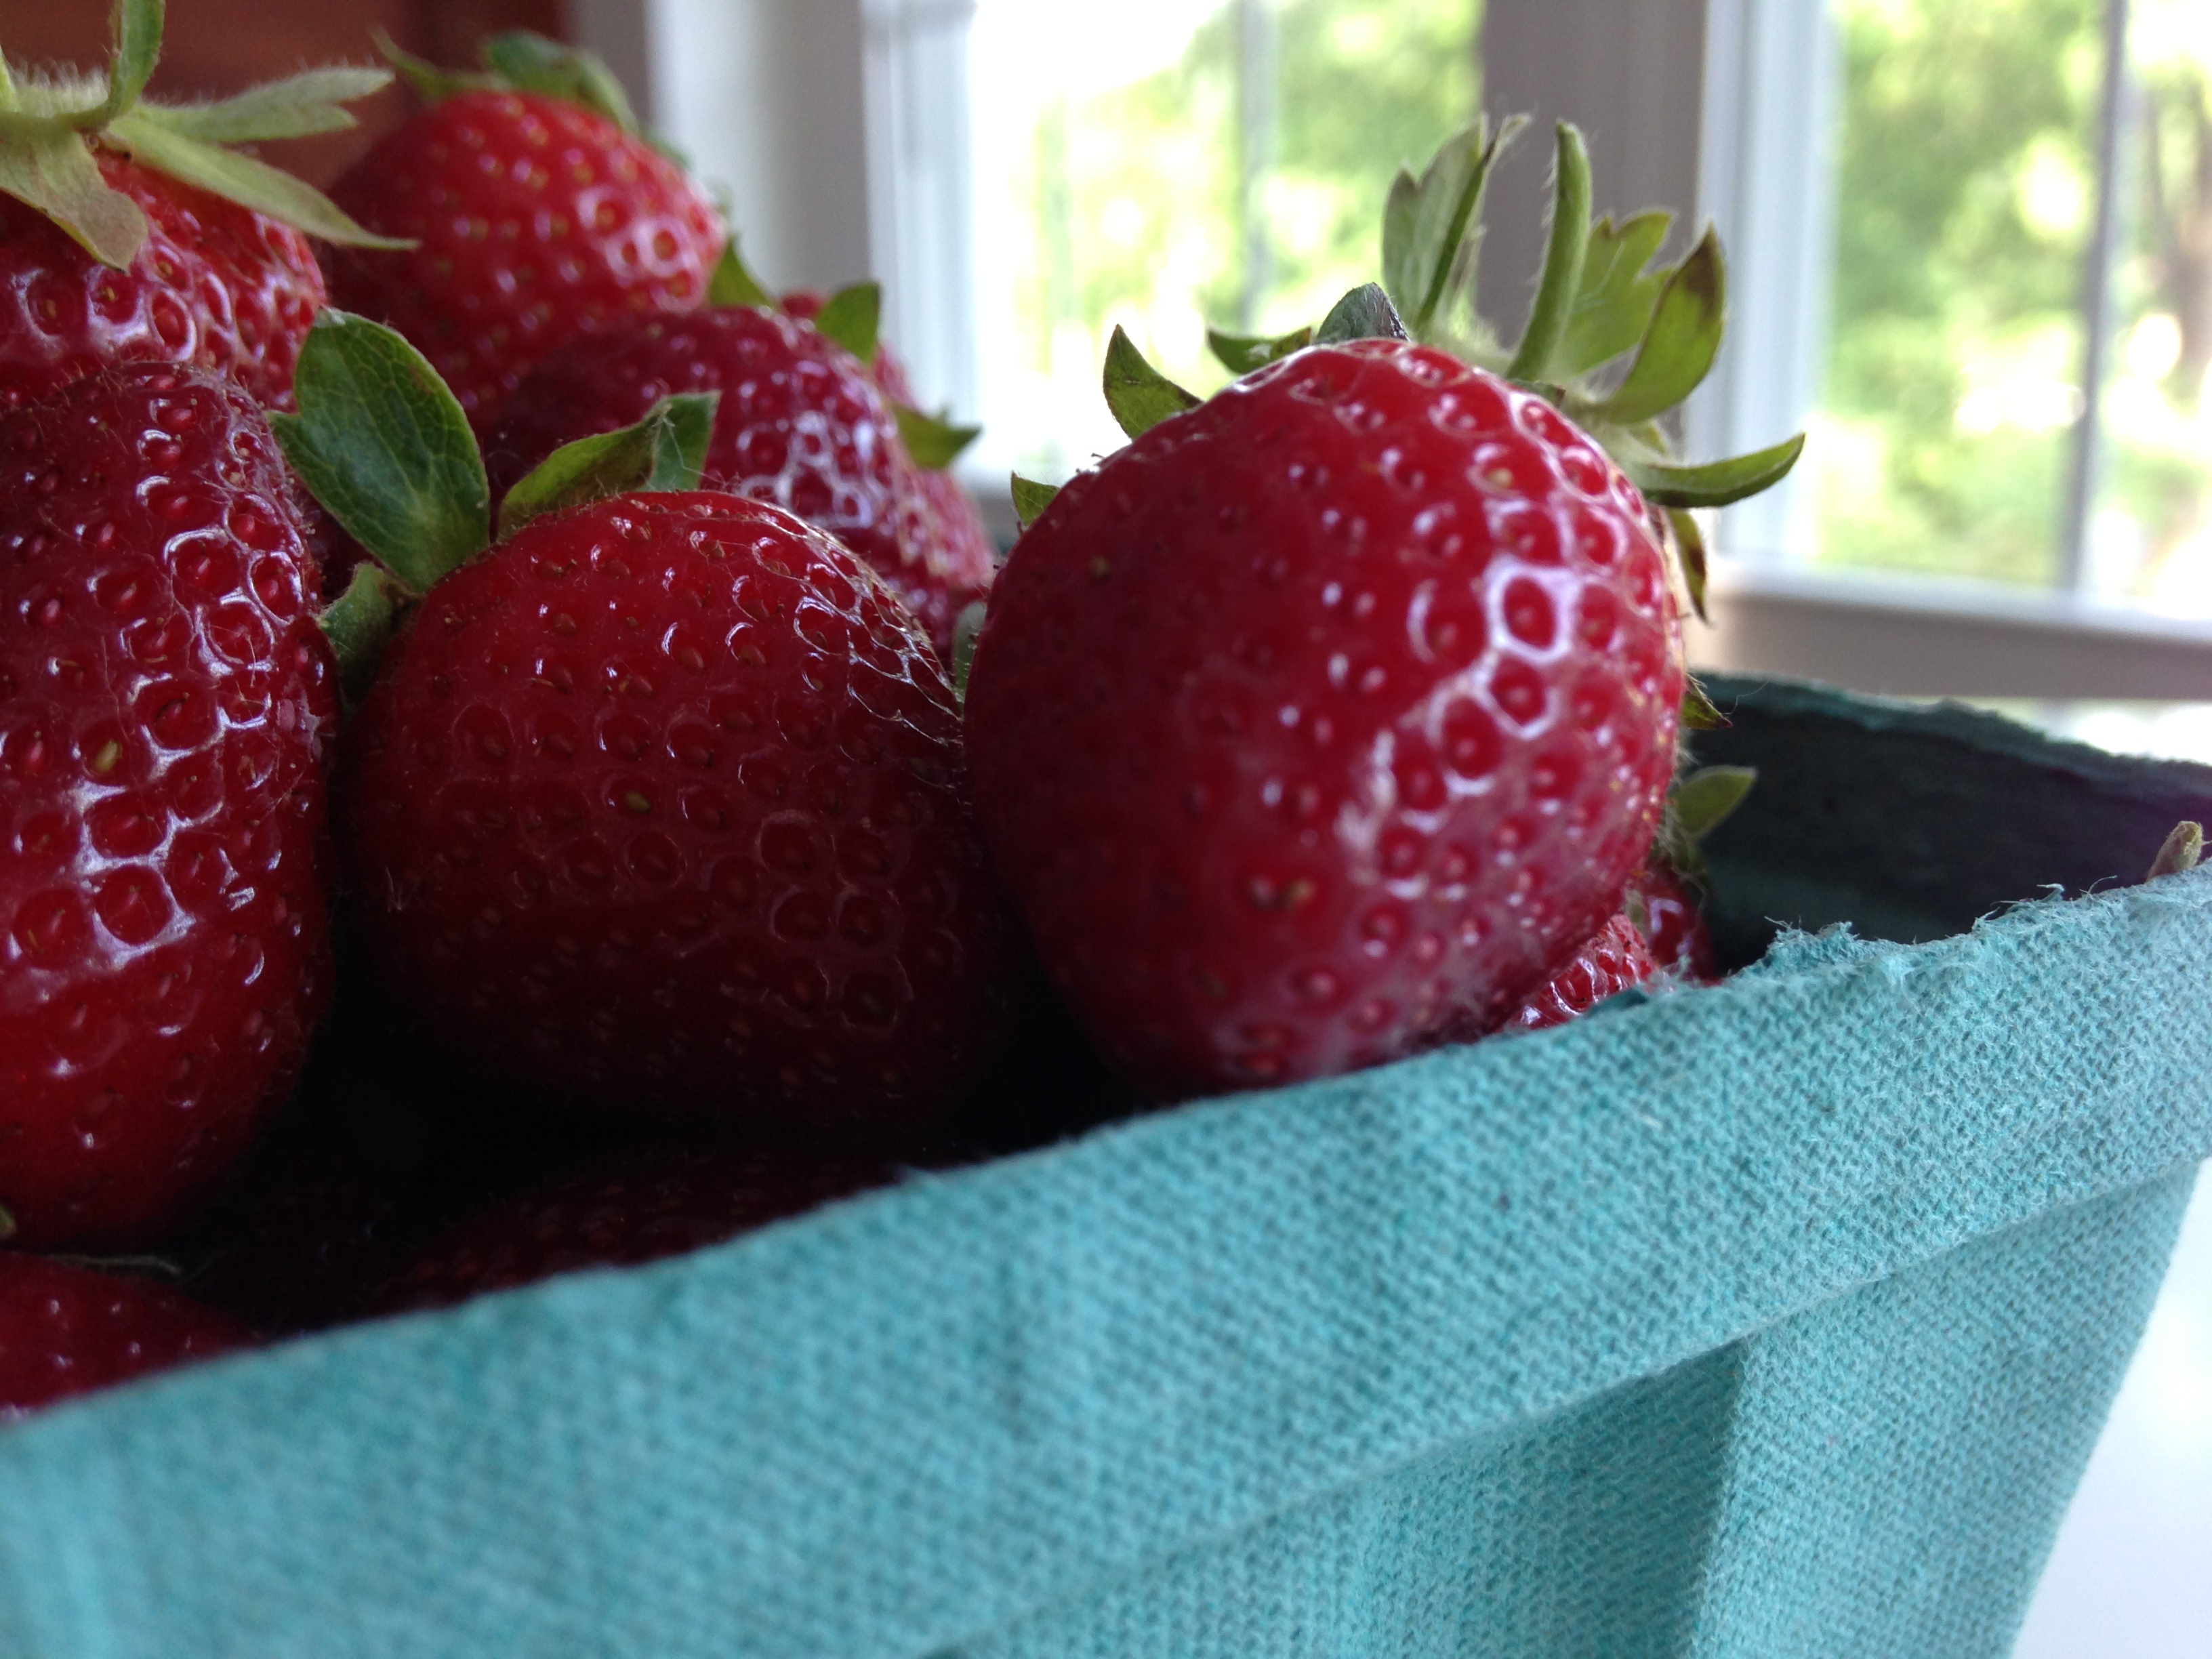 It's Strawberry Season in the Finger Lakes